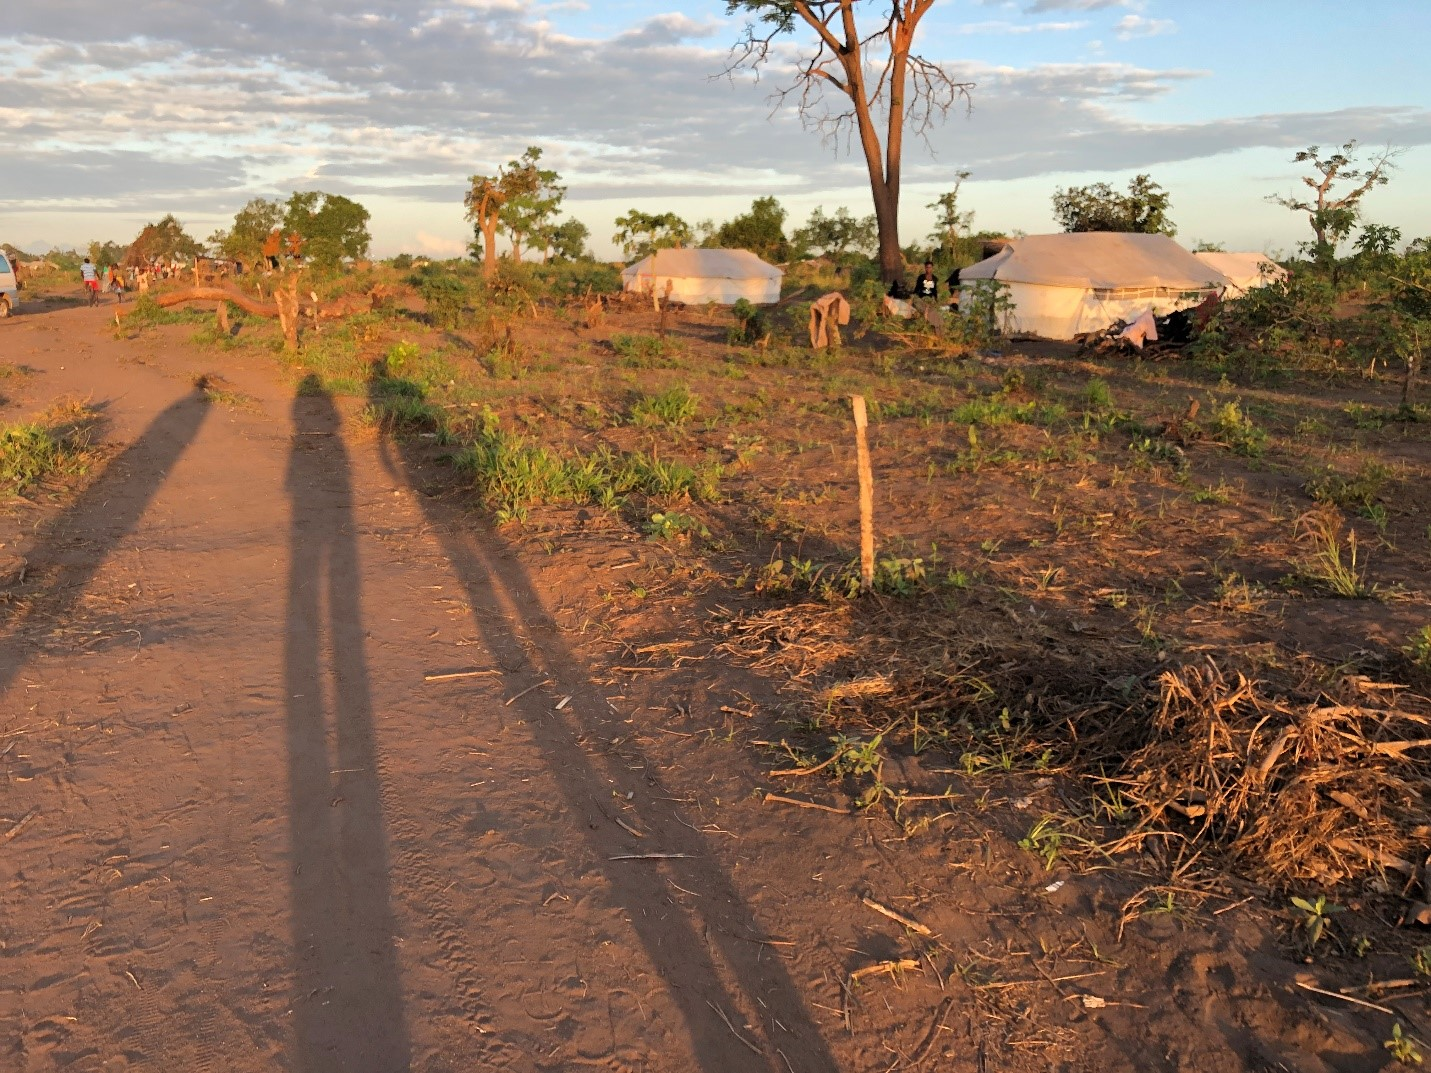 Guara Guara resettlement site in central Mozambique. This is government identified land where people who lost their homes are trying to restart their lives.